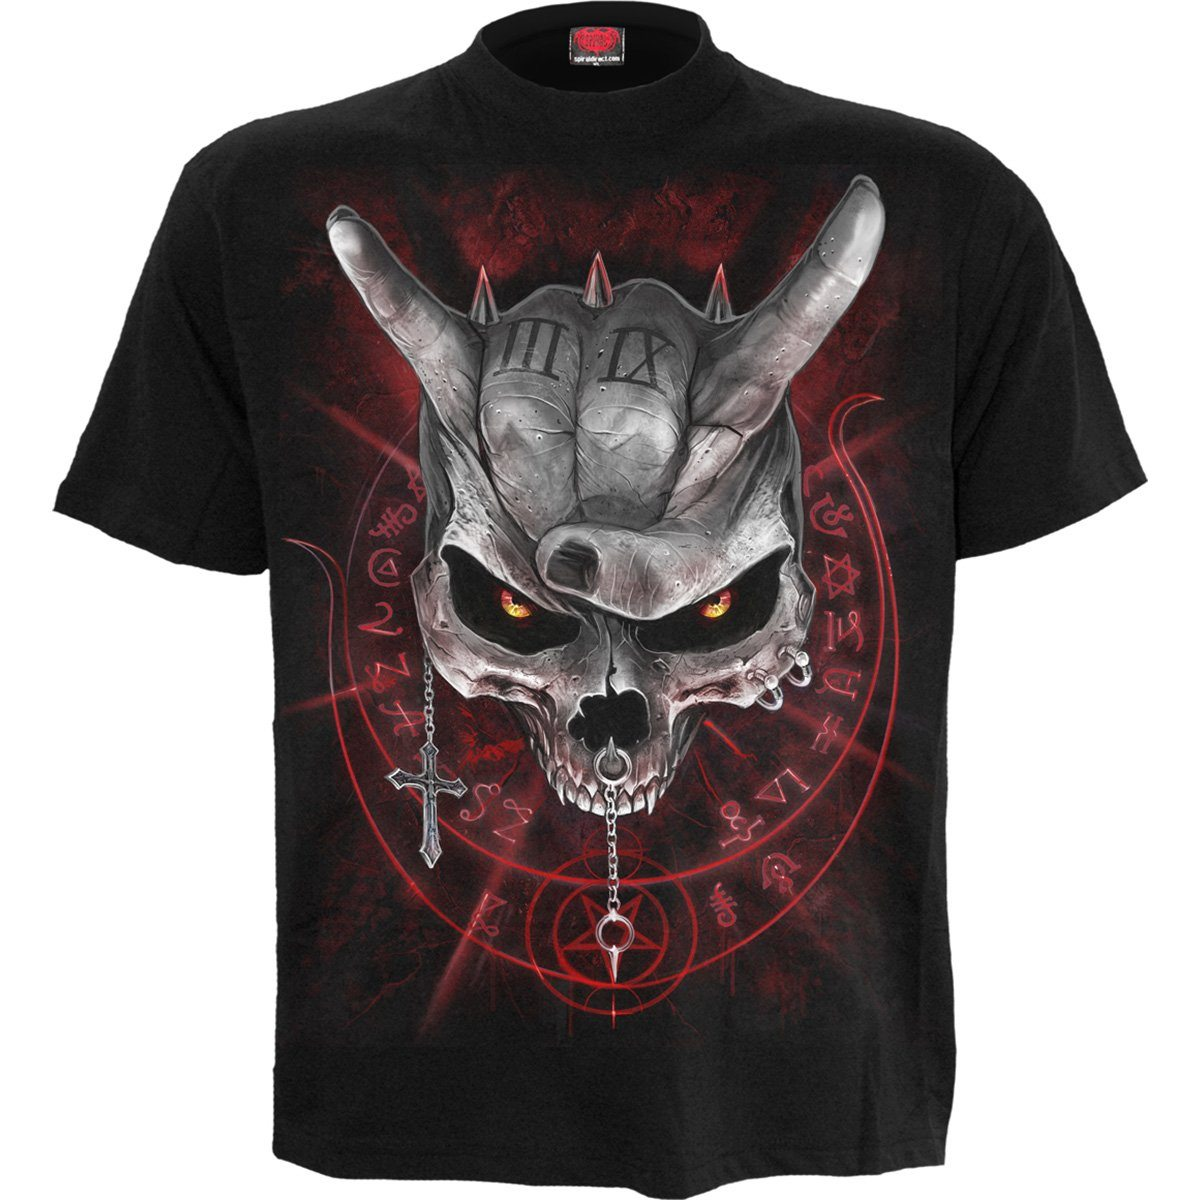 Living Loud Skull Kid's Black T-Shirt